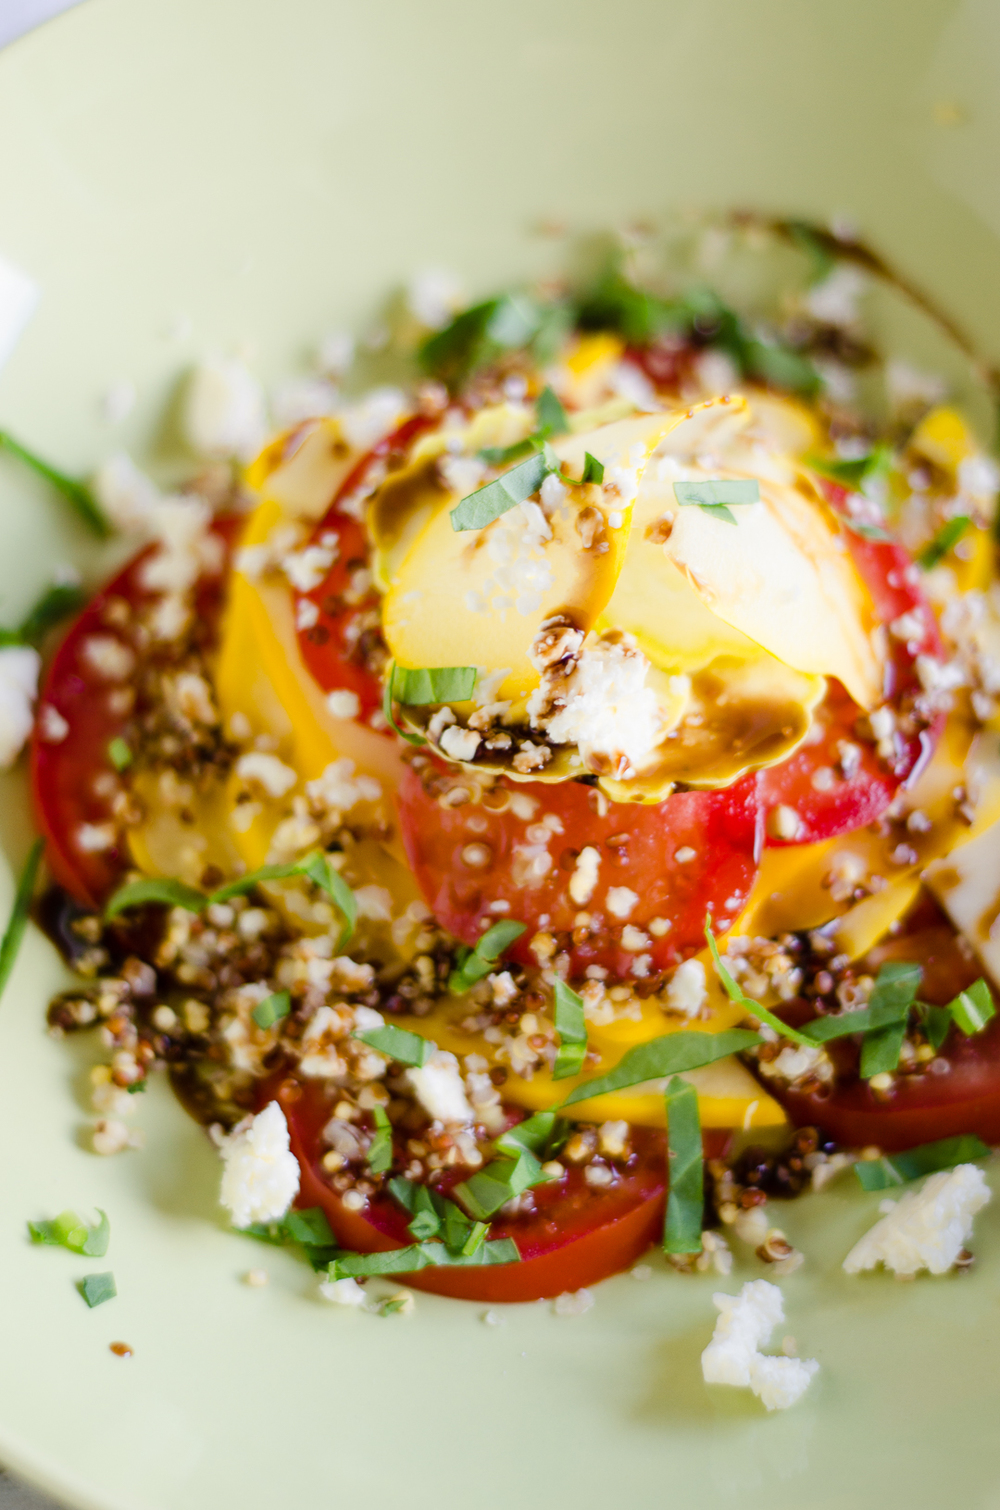 Pattypan & Tomato Salad with Balsamic Dressing, Feta, Arugula. - This delightful early summer vegetarian salad recipe is suitable for plant-based eaters. Features farro & squash. thenomadicwife.com